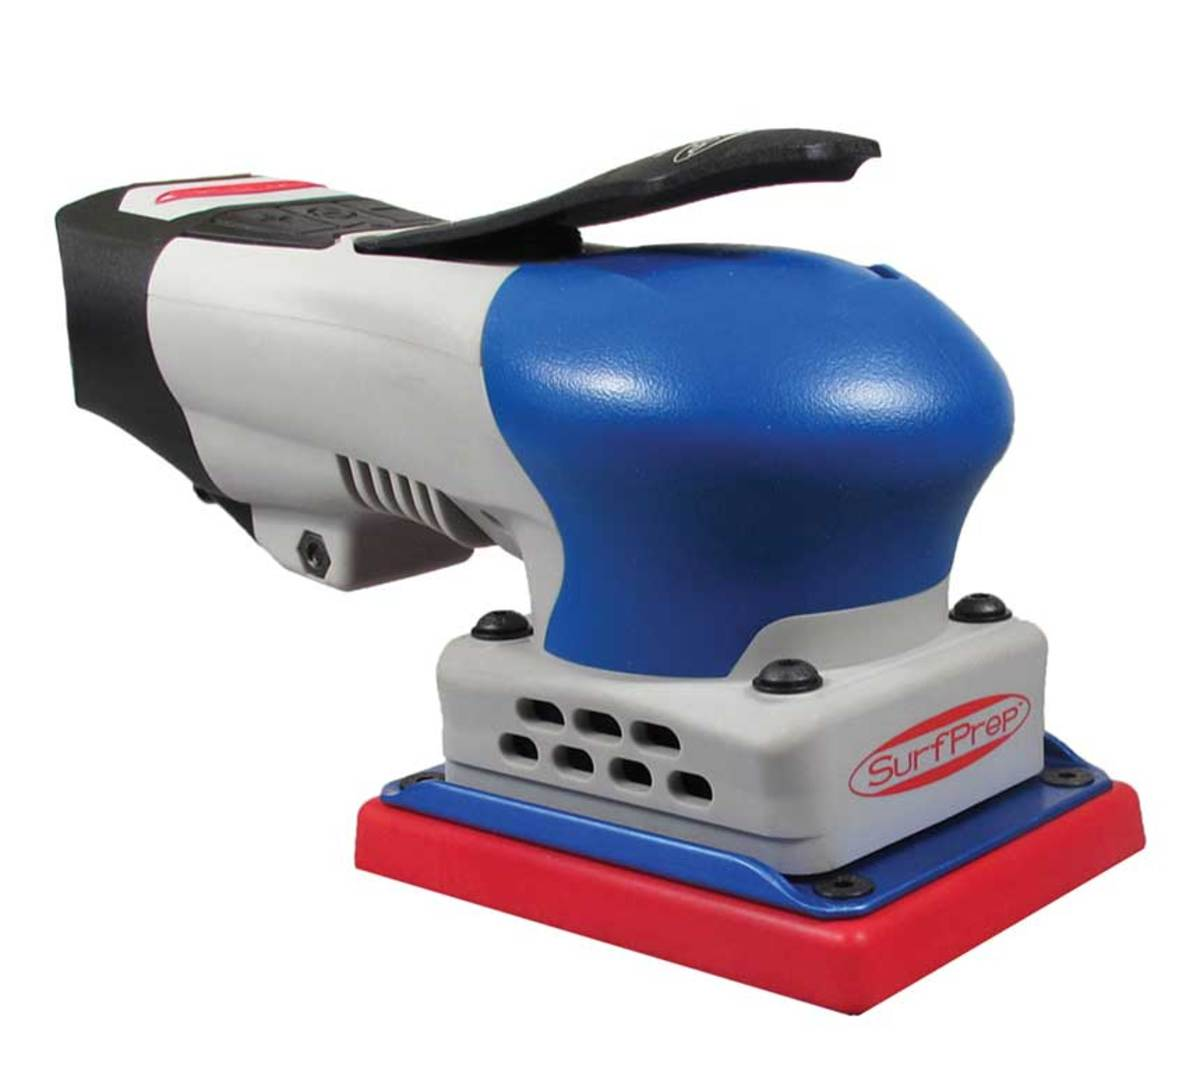 Surf-Prep's Electric Ray sander;